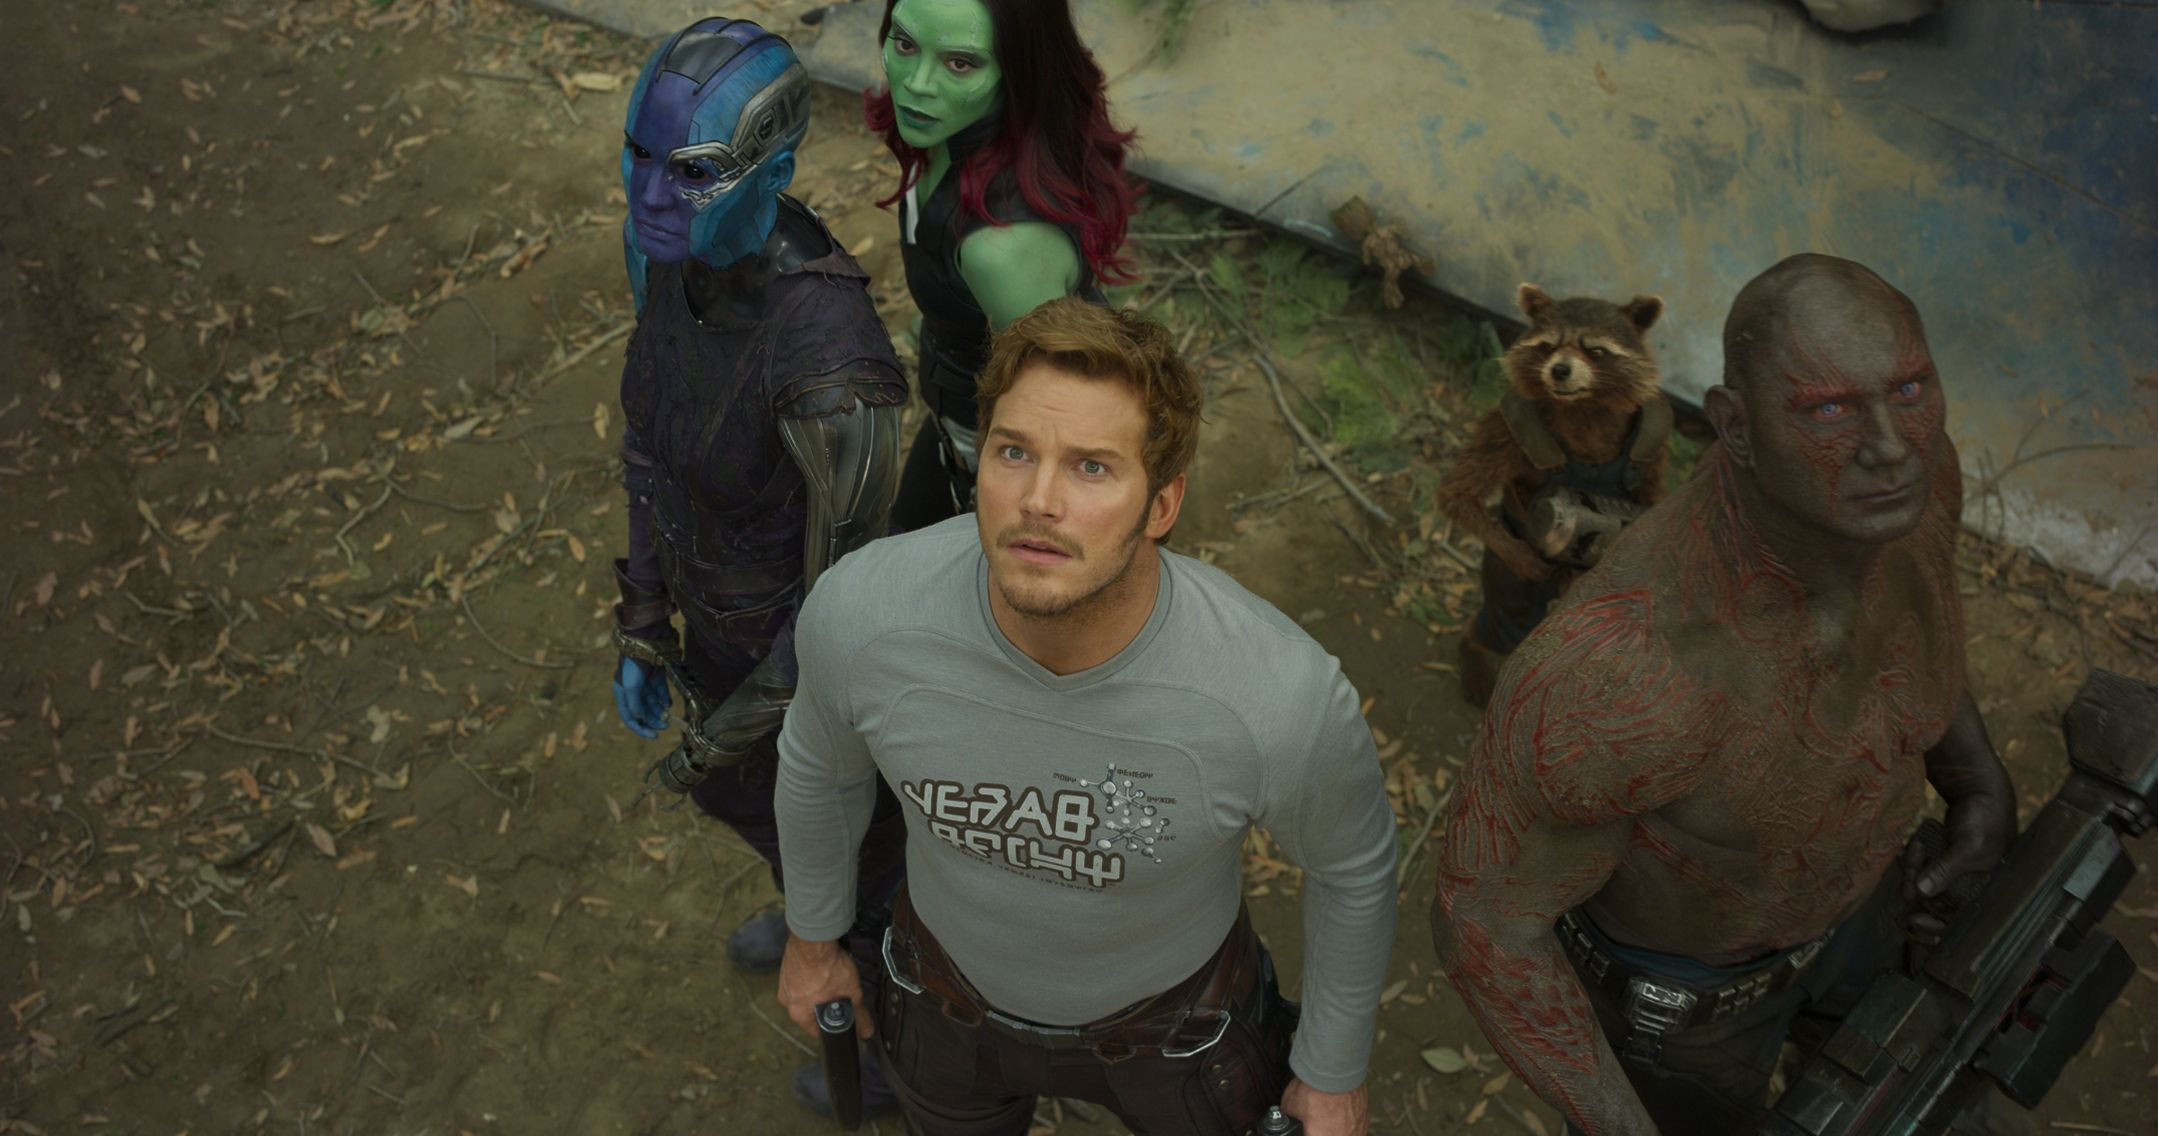 Chris Pratt Explains Why He Doesn't Take Pictures With Fans Anymore